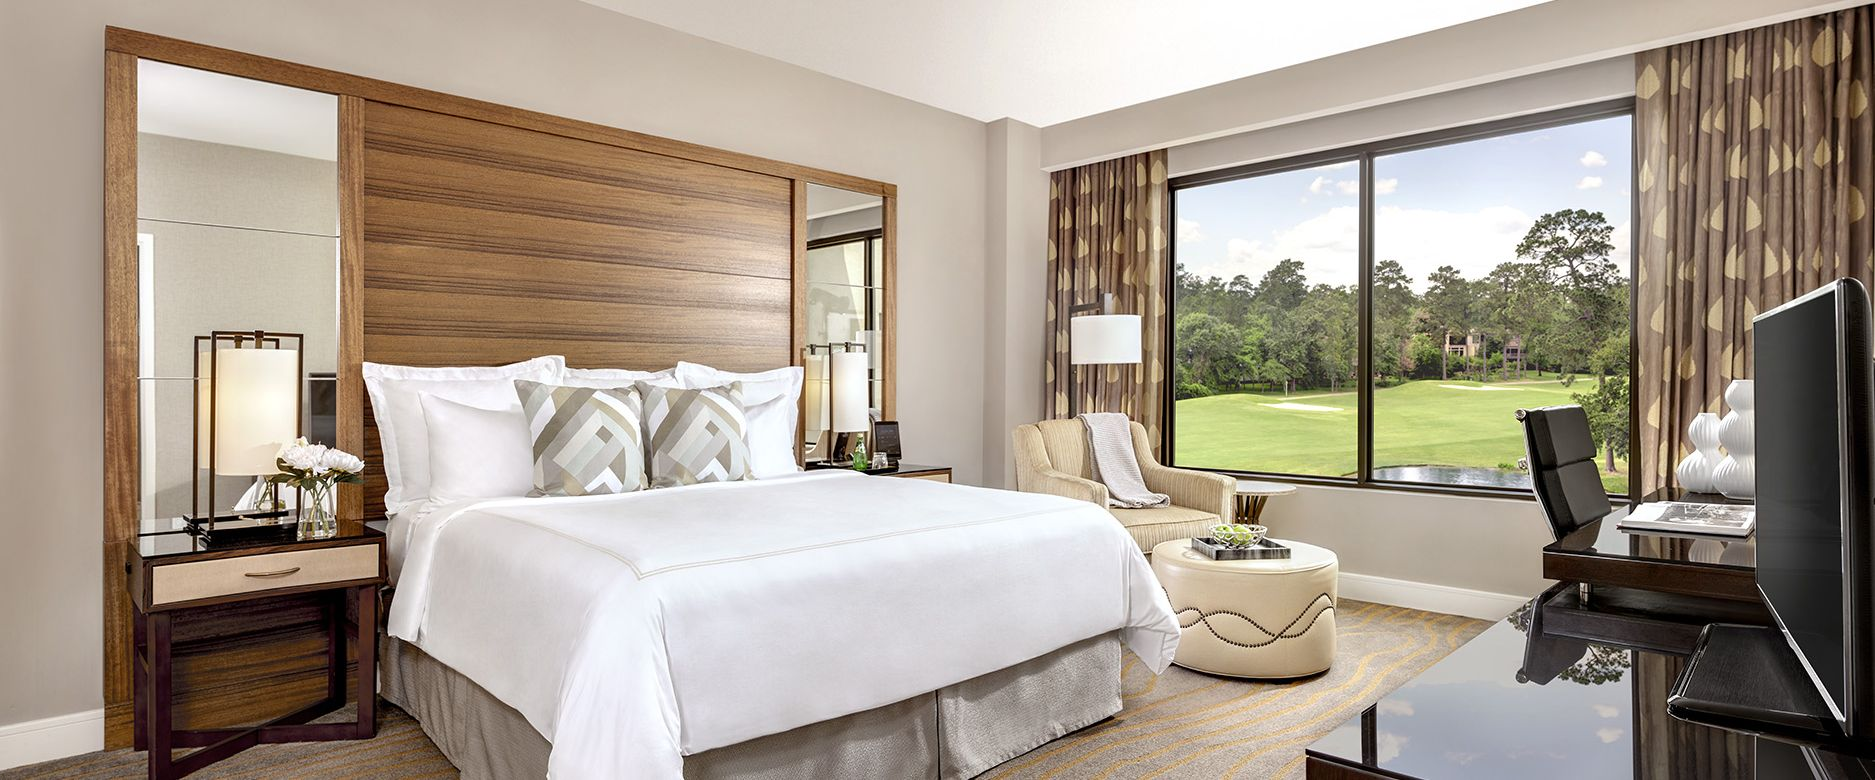 The Woodlands Suite Bedroom with a view of the golf course